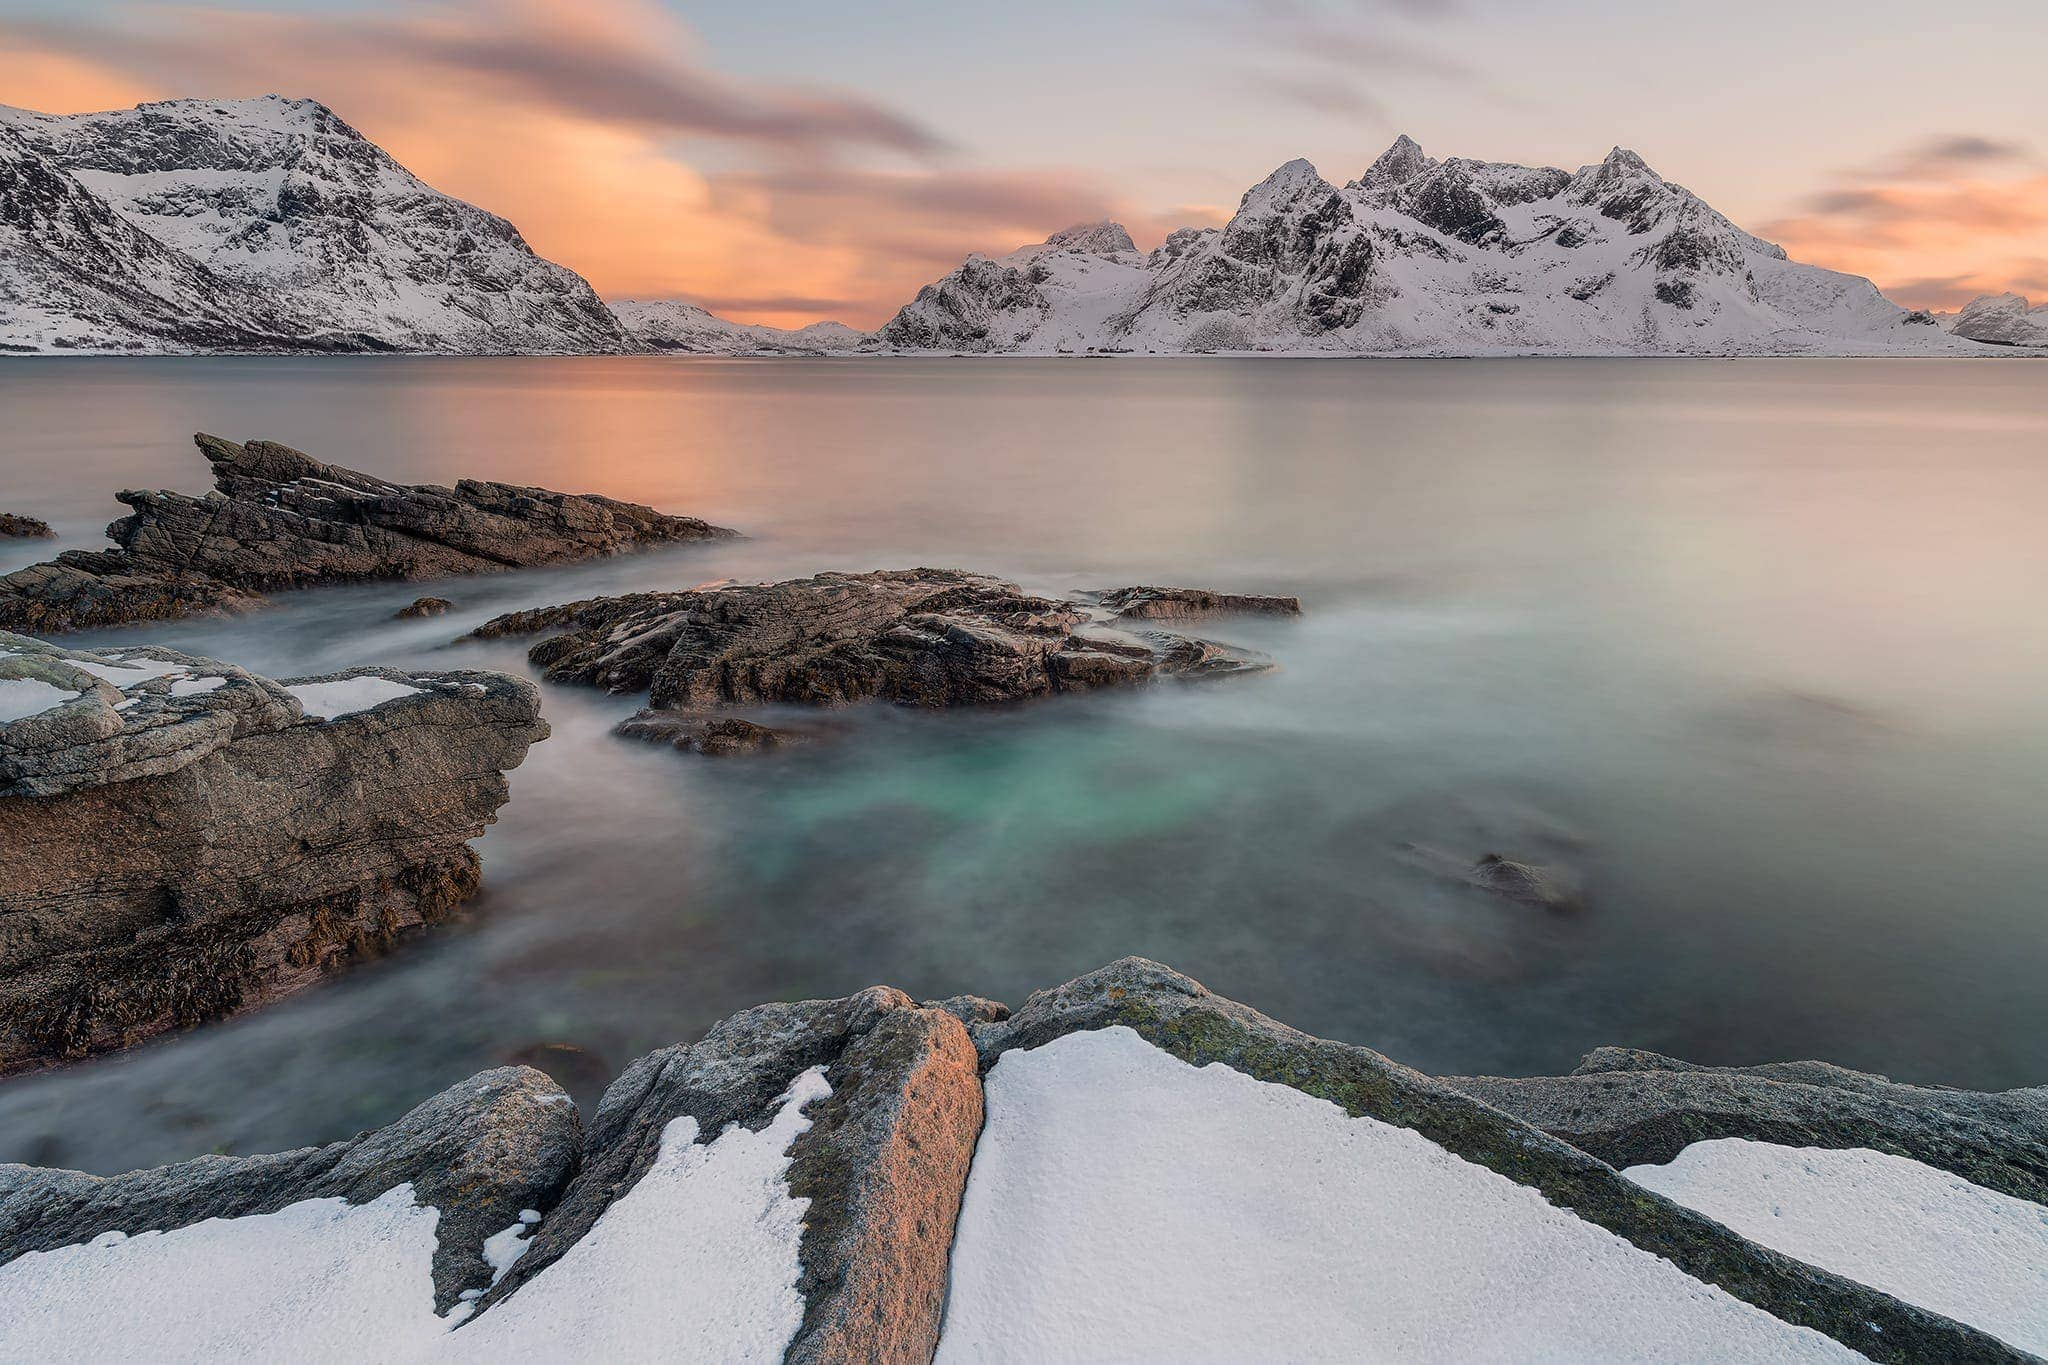 Francesco Gola Seascape Landscape Waterscape Long Exposure Lofoten Vareid Sunset Snow